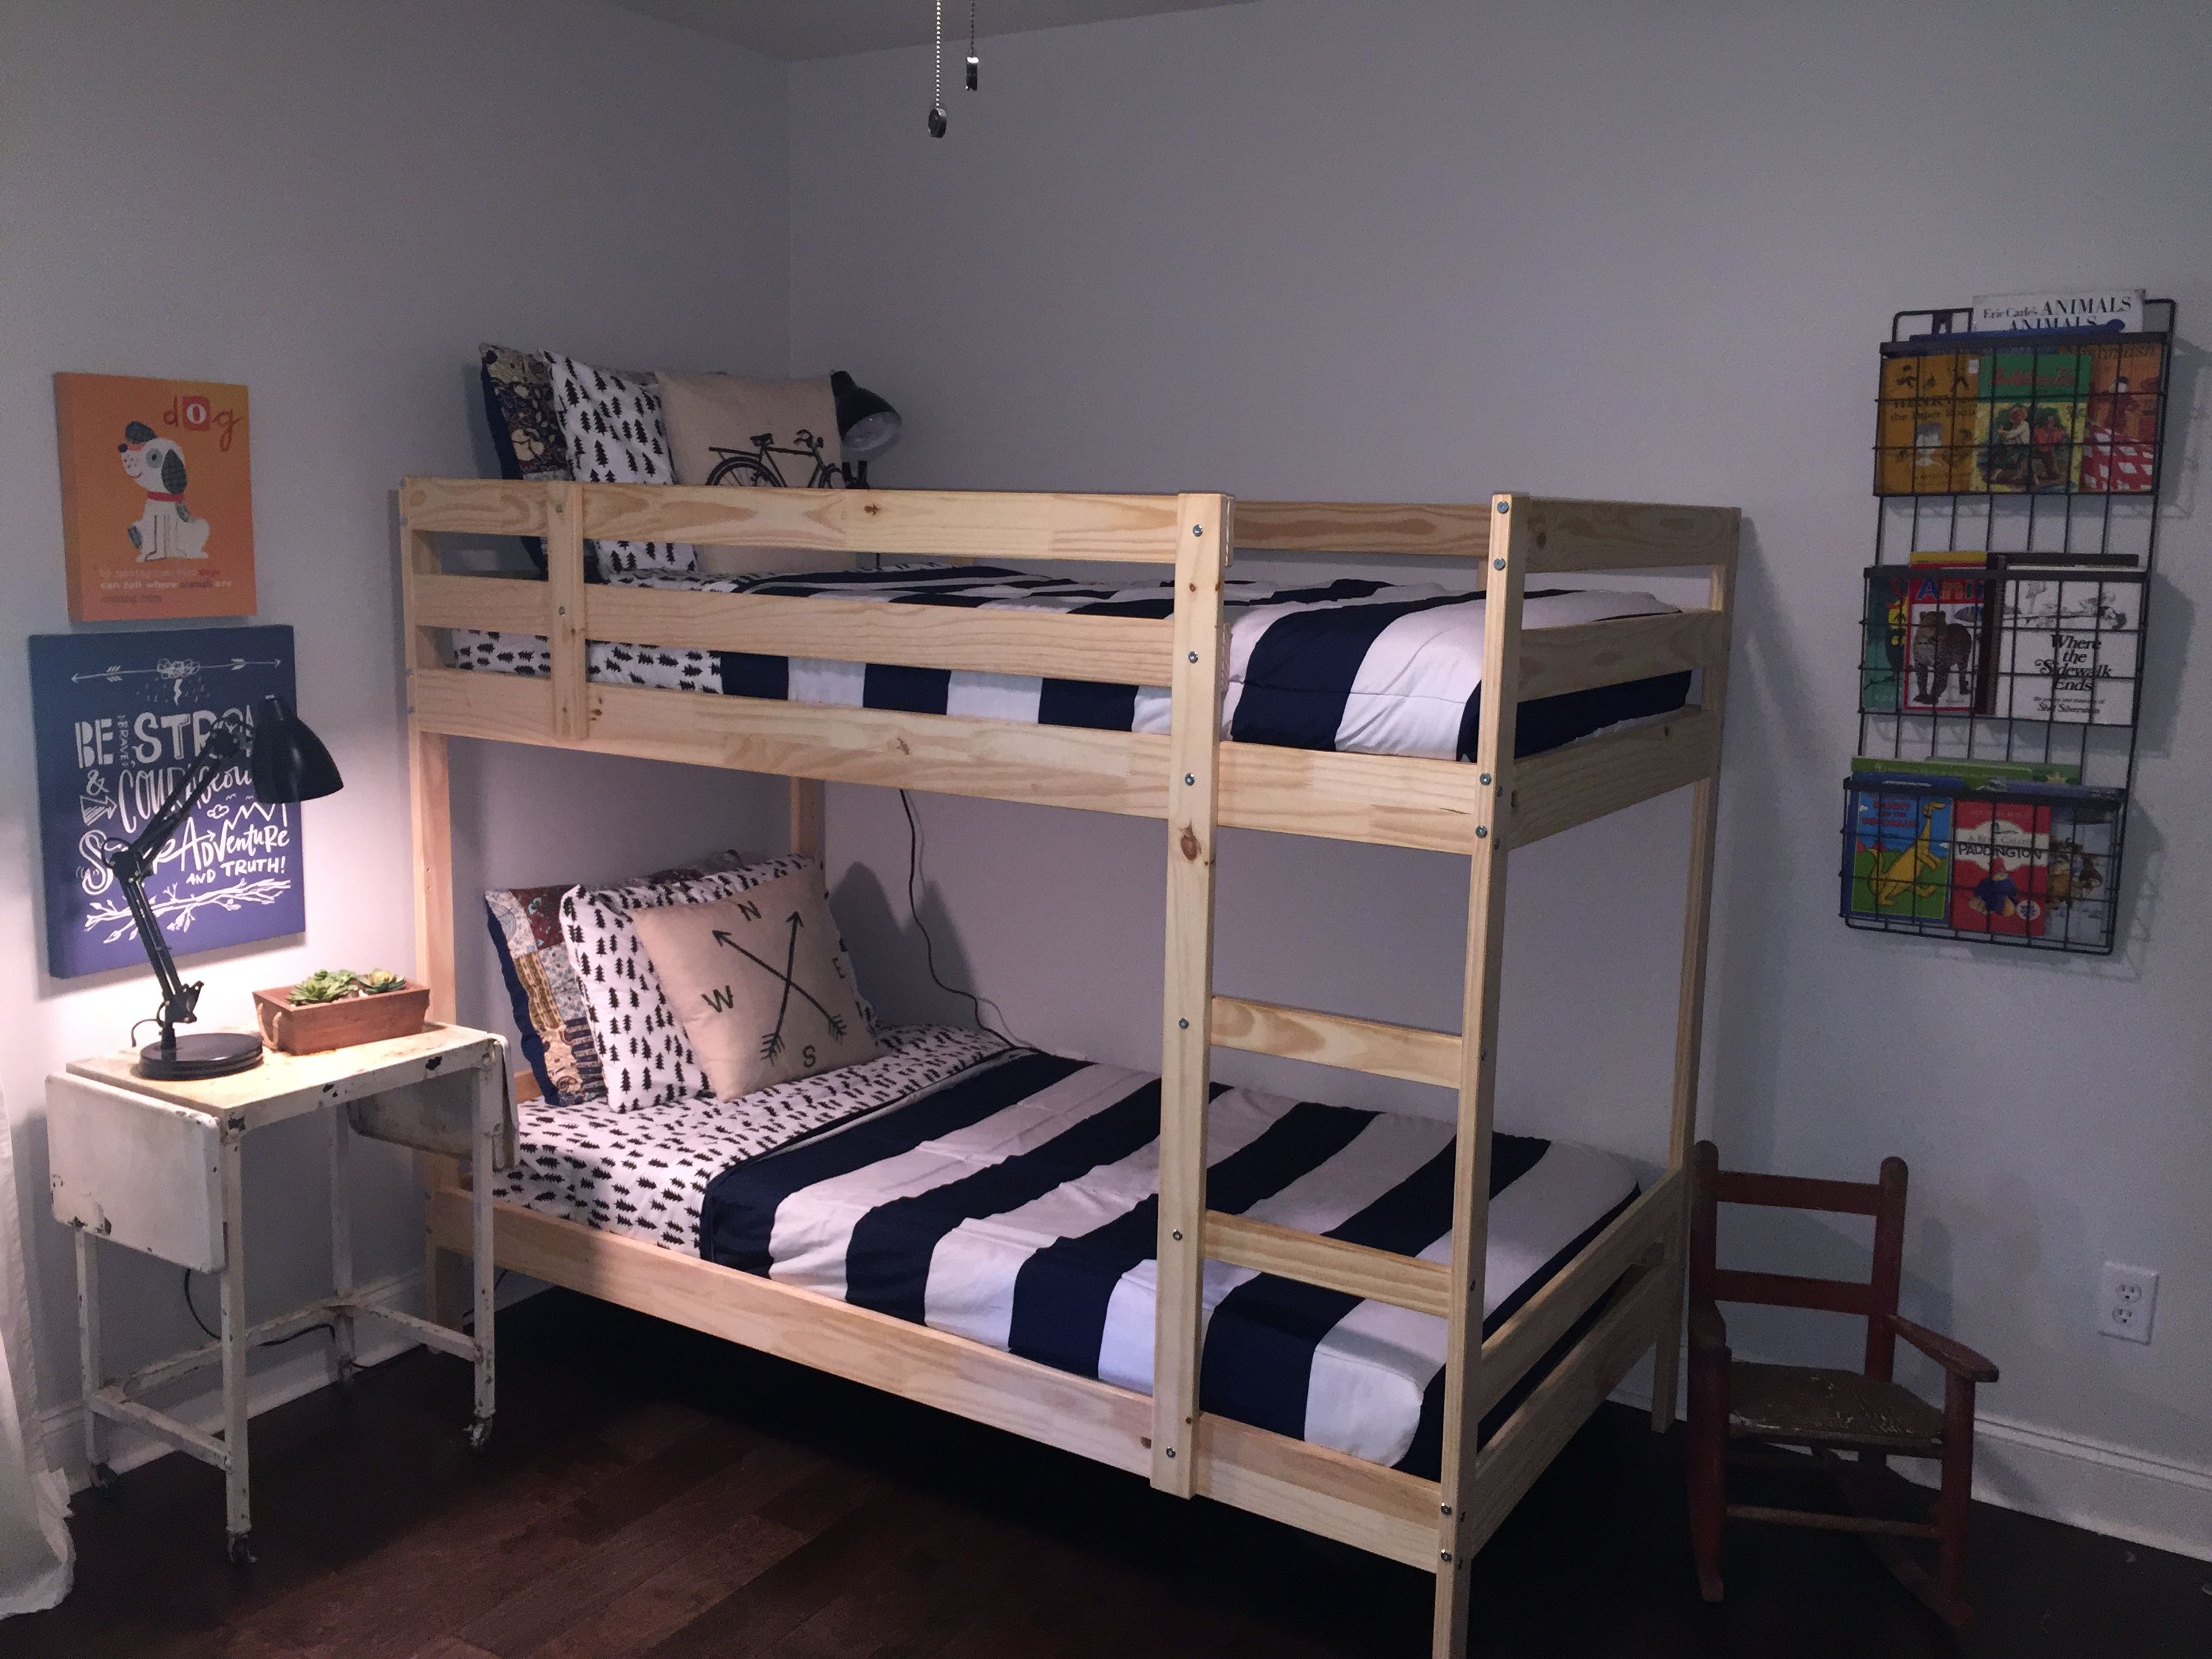 ikea mydal bunk beds adventure shared boys room